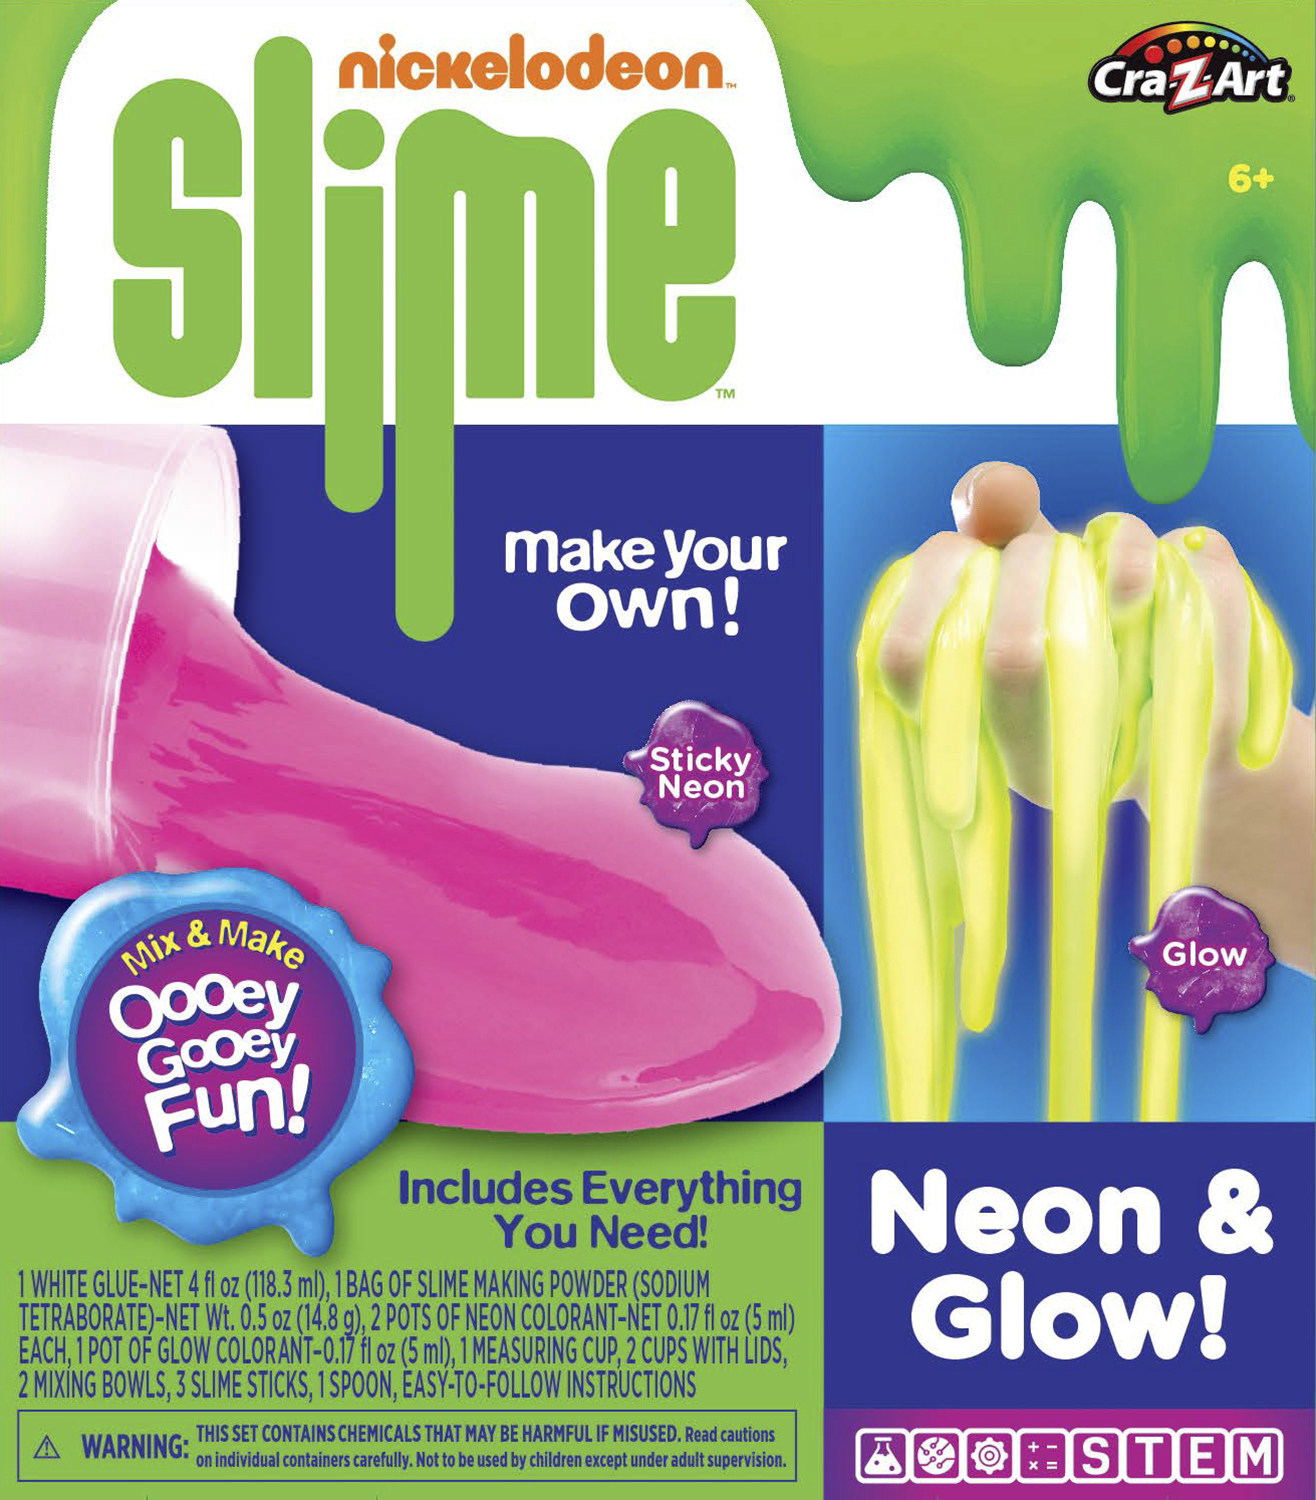 cra z art nickelodeon slime instructions pdf